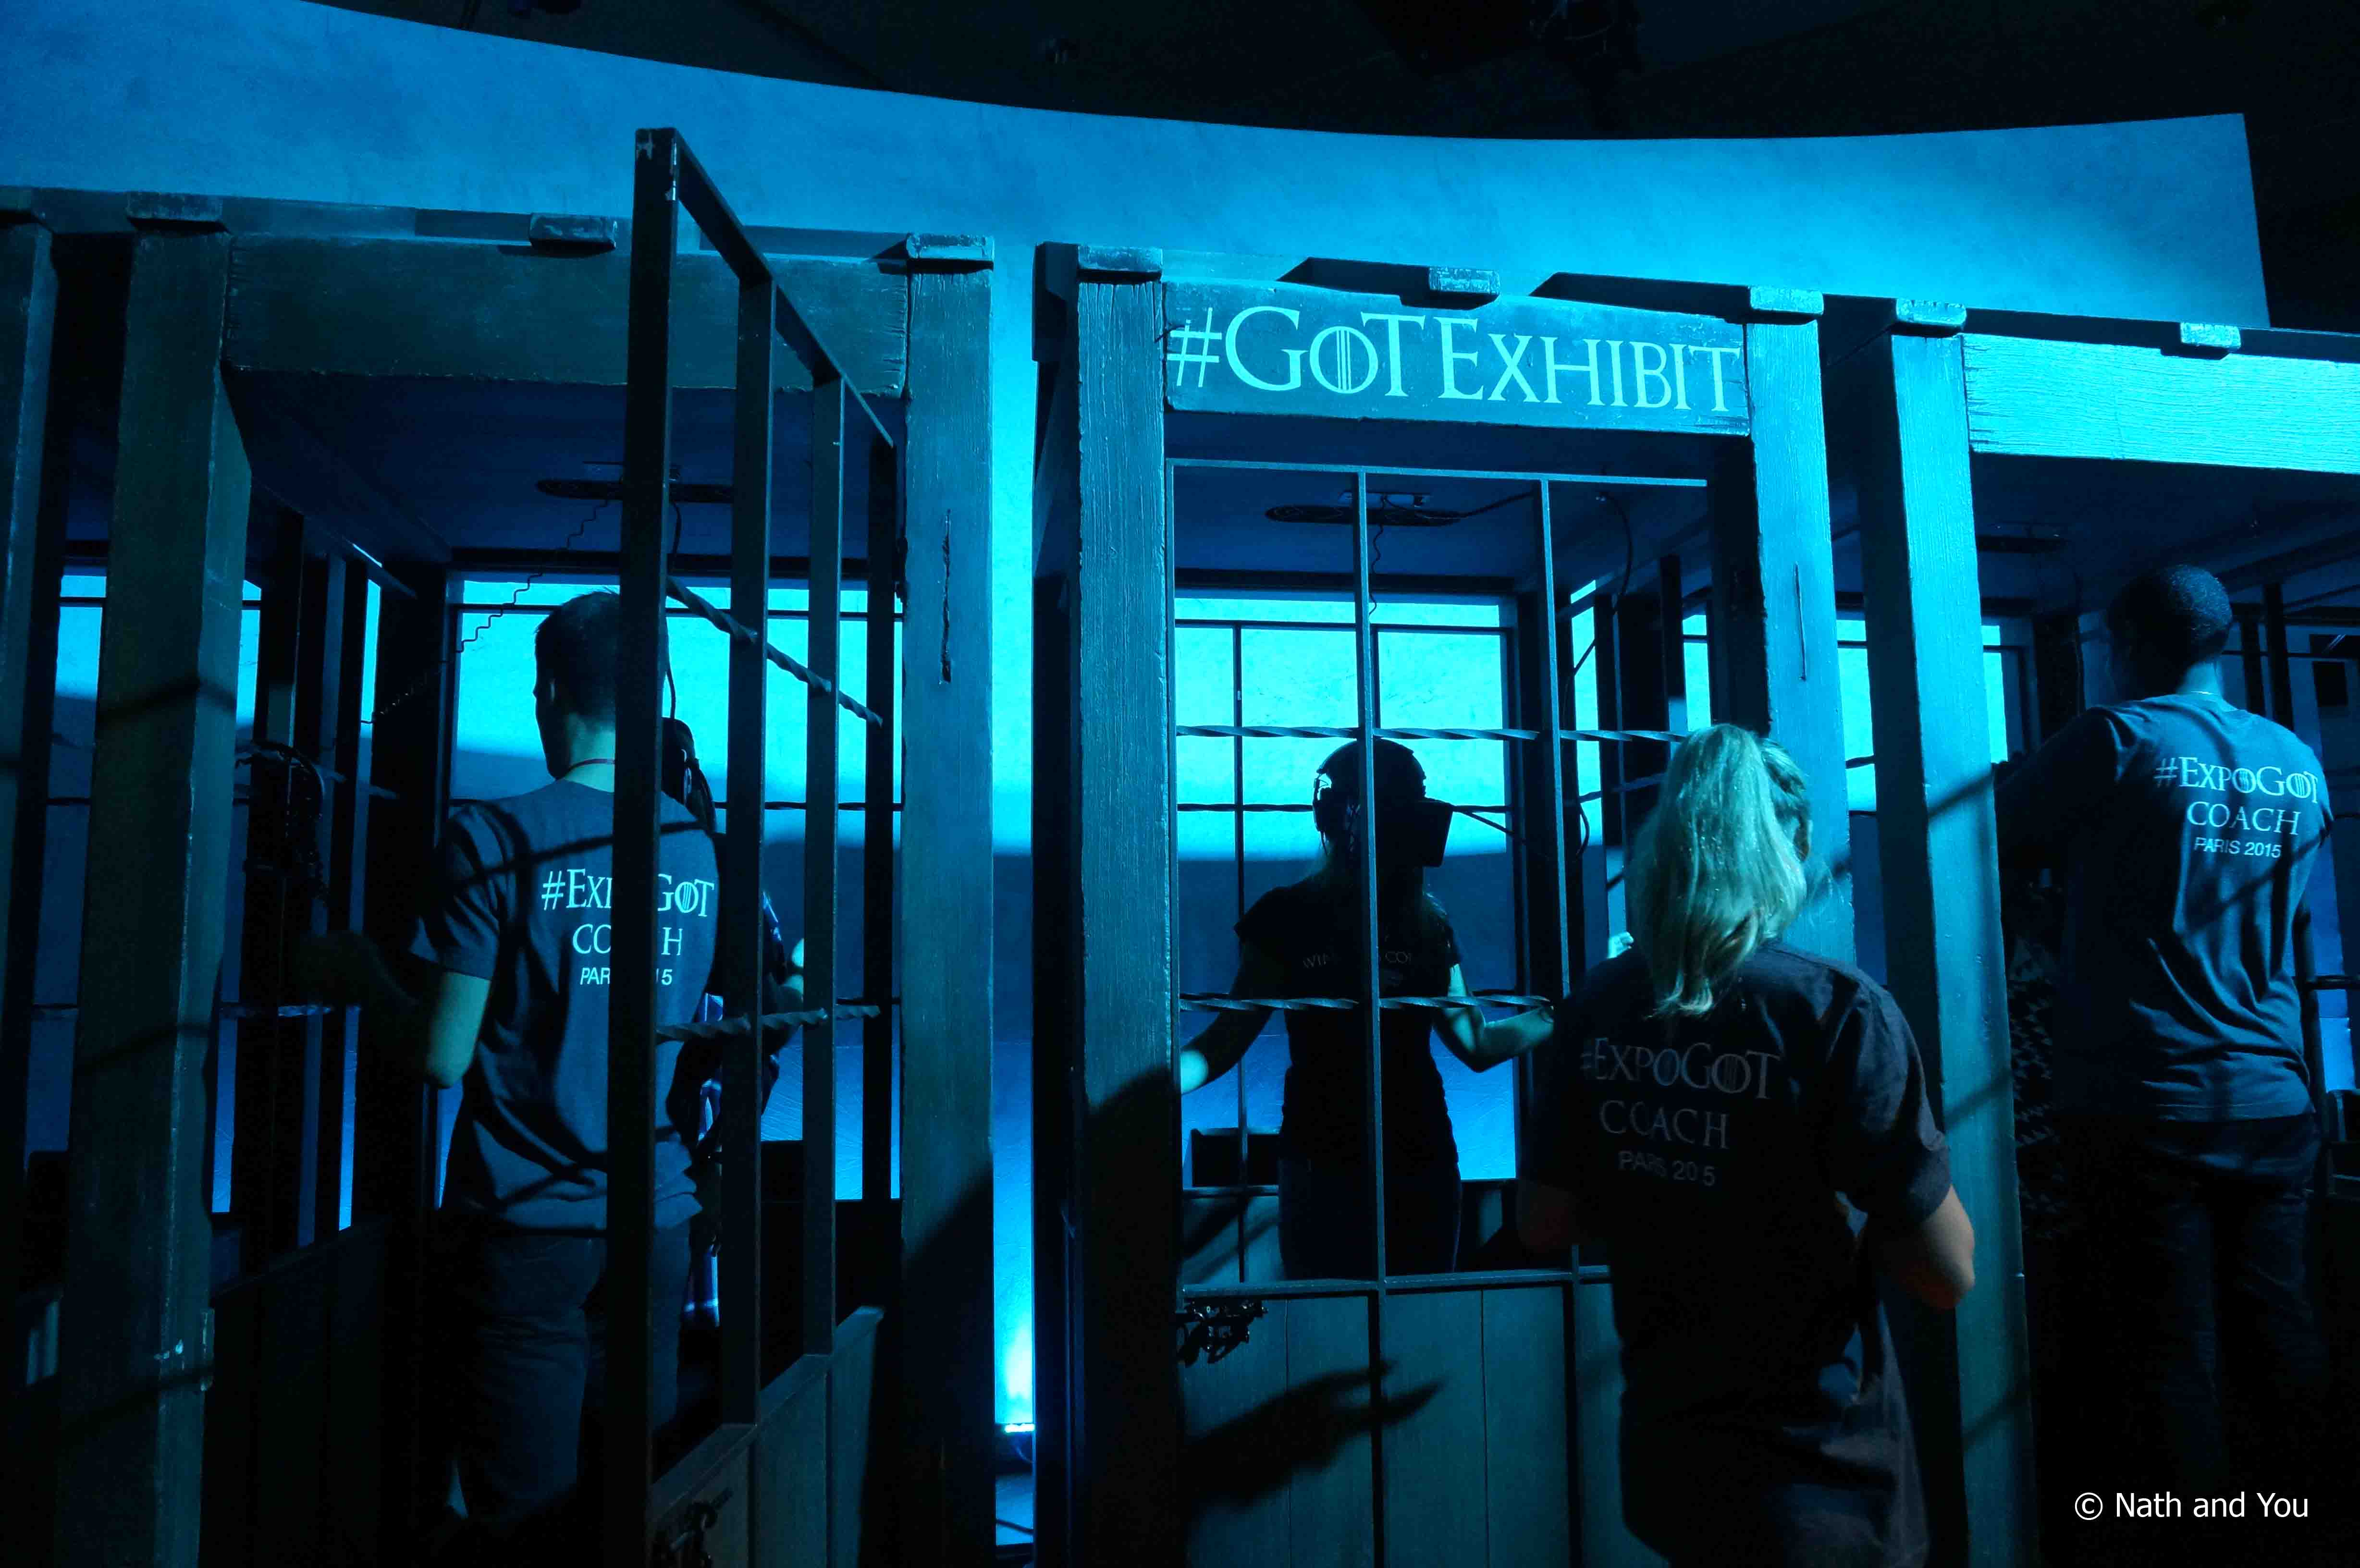 Ascension-Mur-Chateaunoir-4D-Exposition-Game-Of-Thrones-Nath-and-you